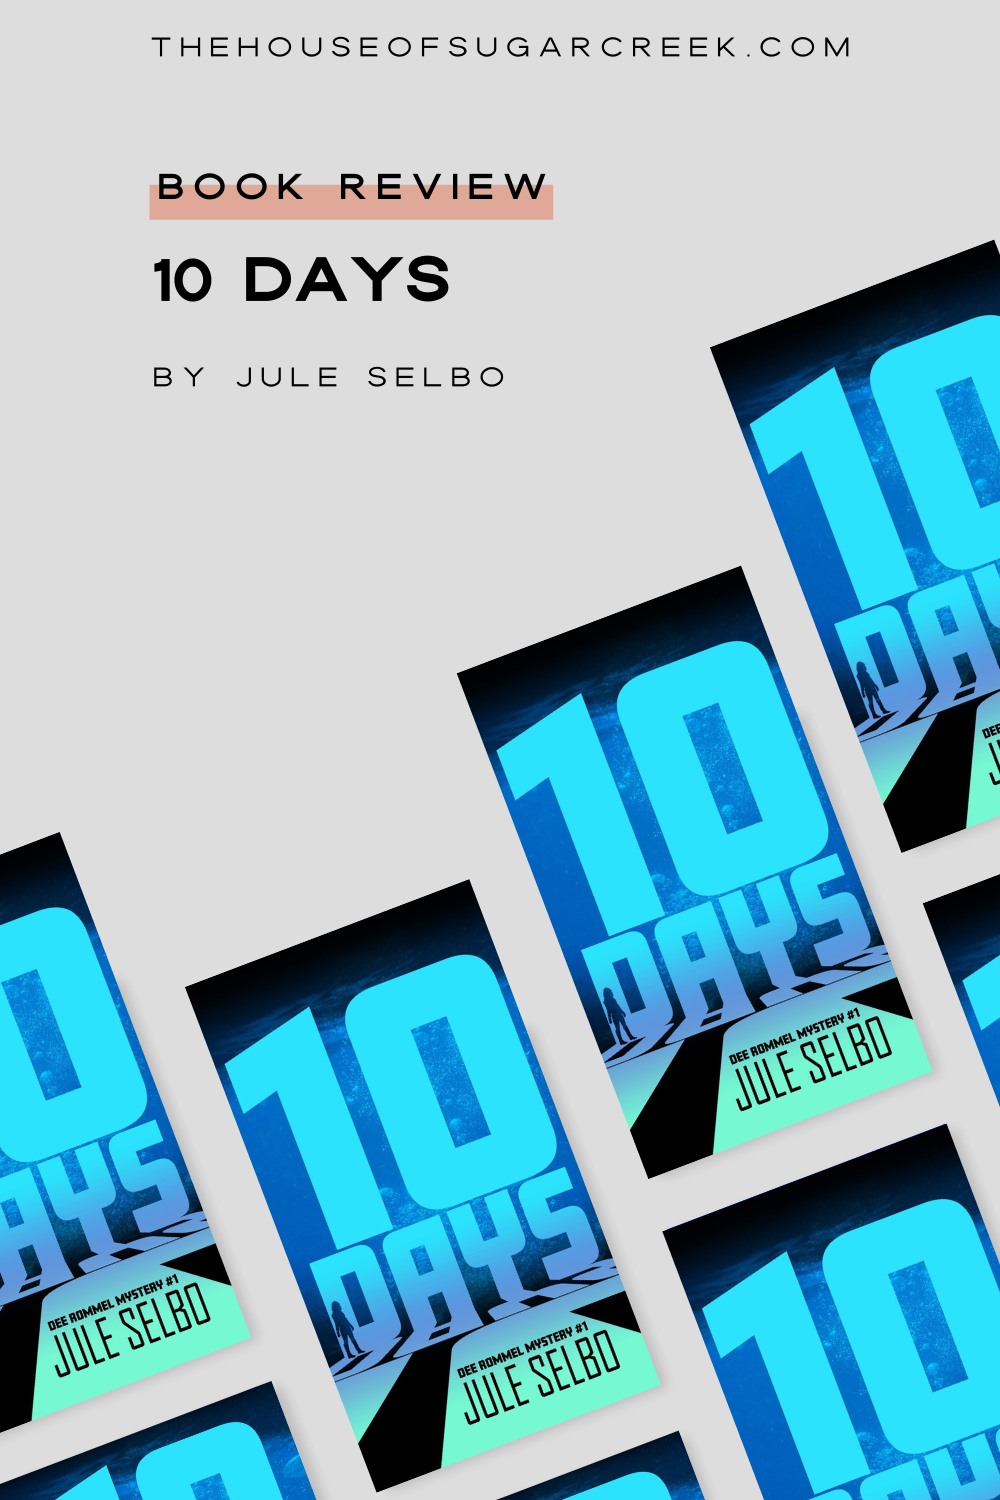 Book Review - 10 Days by Jule Selbo